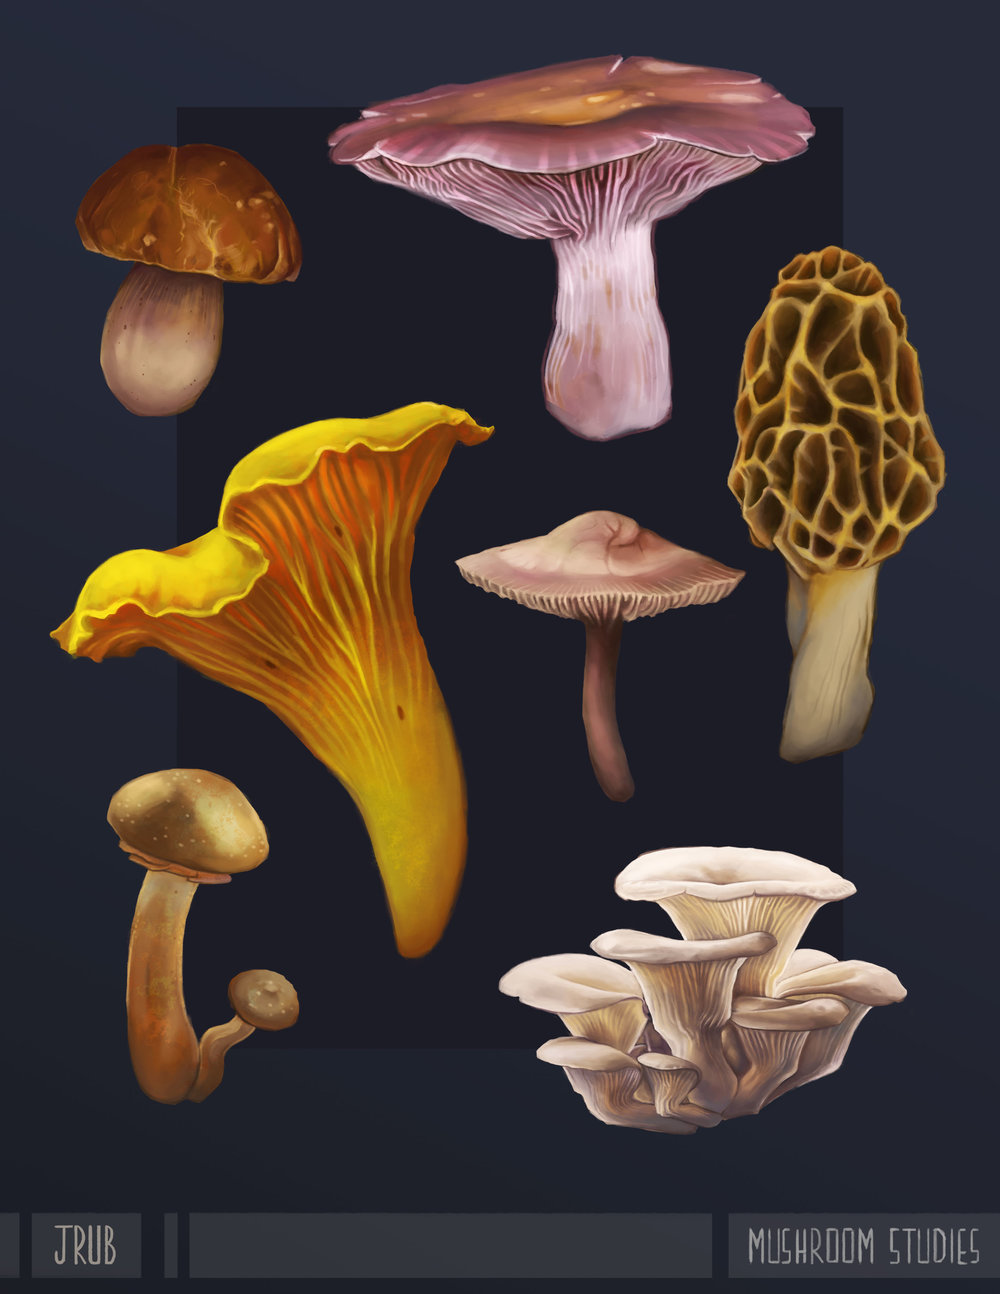 Studies of mushrooms that could be found among the burrows.From top-left: Cep, Blewit, Chanterelle, Fairy Ring, Morel, Armillaria, and Oyster.